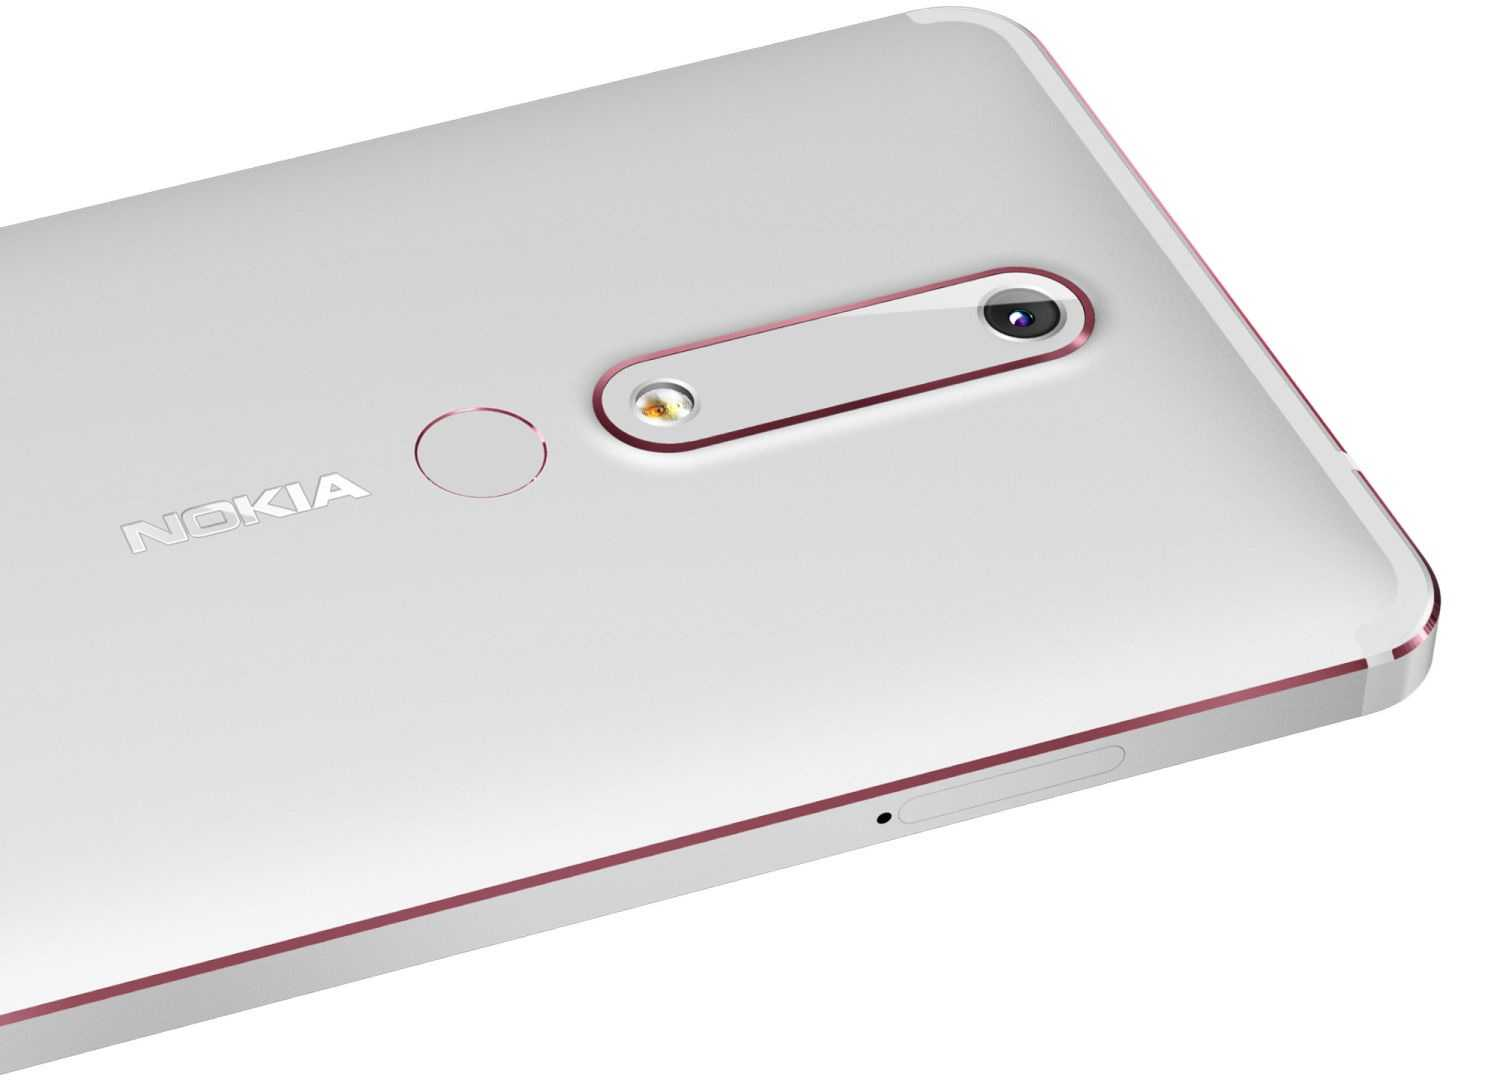 New Nokia 6 2018 Edition Launched Specs Pricing and Bothie Camera Explained